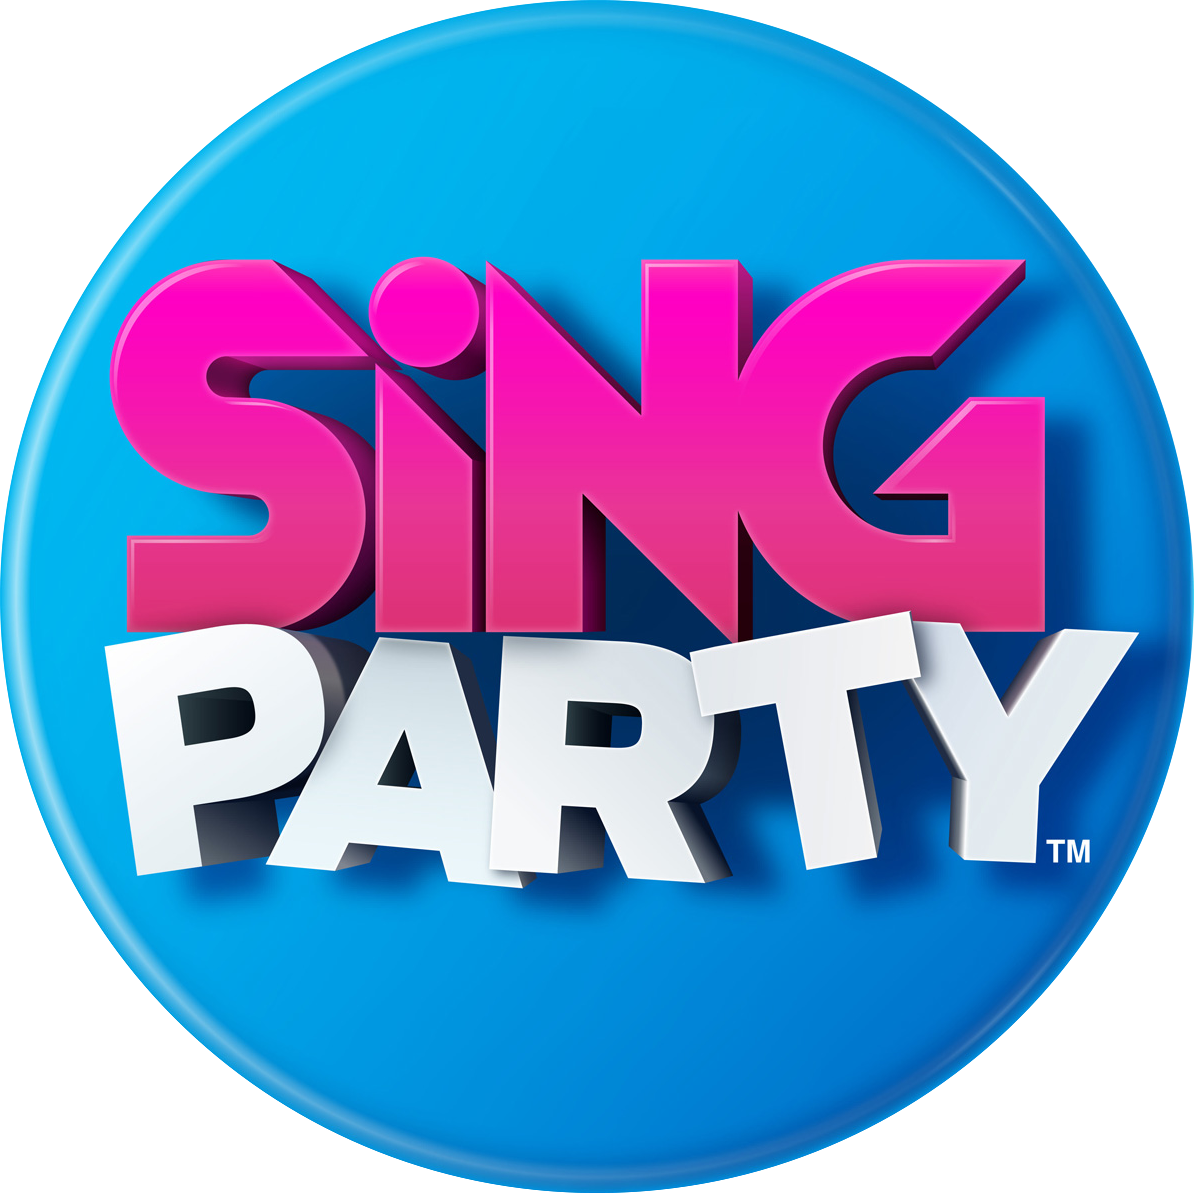 image sing party logo png nintendo fandom powered by wikia